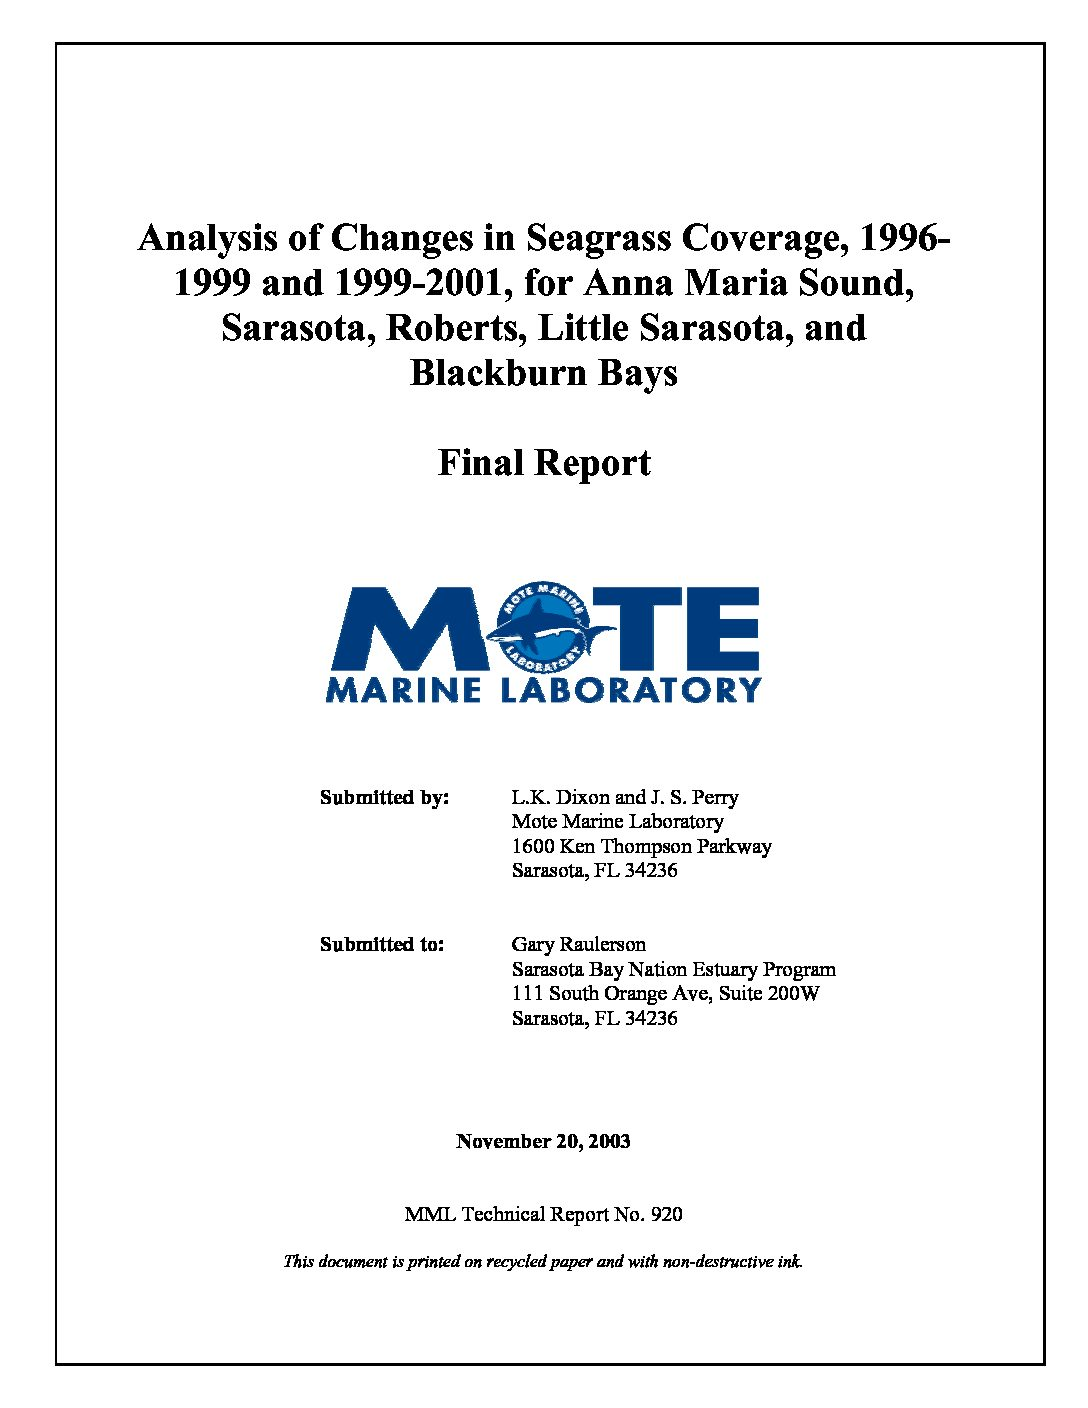 Analysis of Changes in Seagrass Coverage, 1996-1999 and 1999-2001, for Anna Maria Sound, Sarasota, Roberts, Little Sarasota, and Blackburn Bays